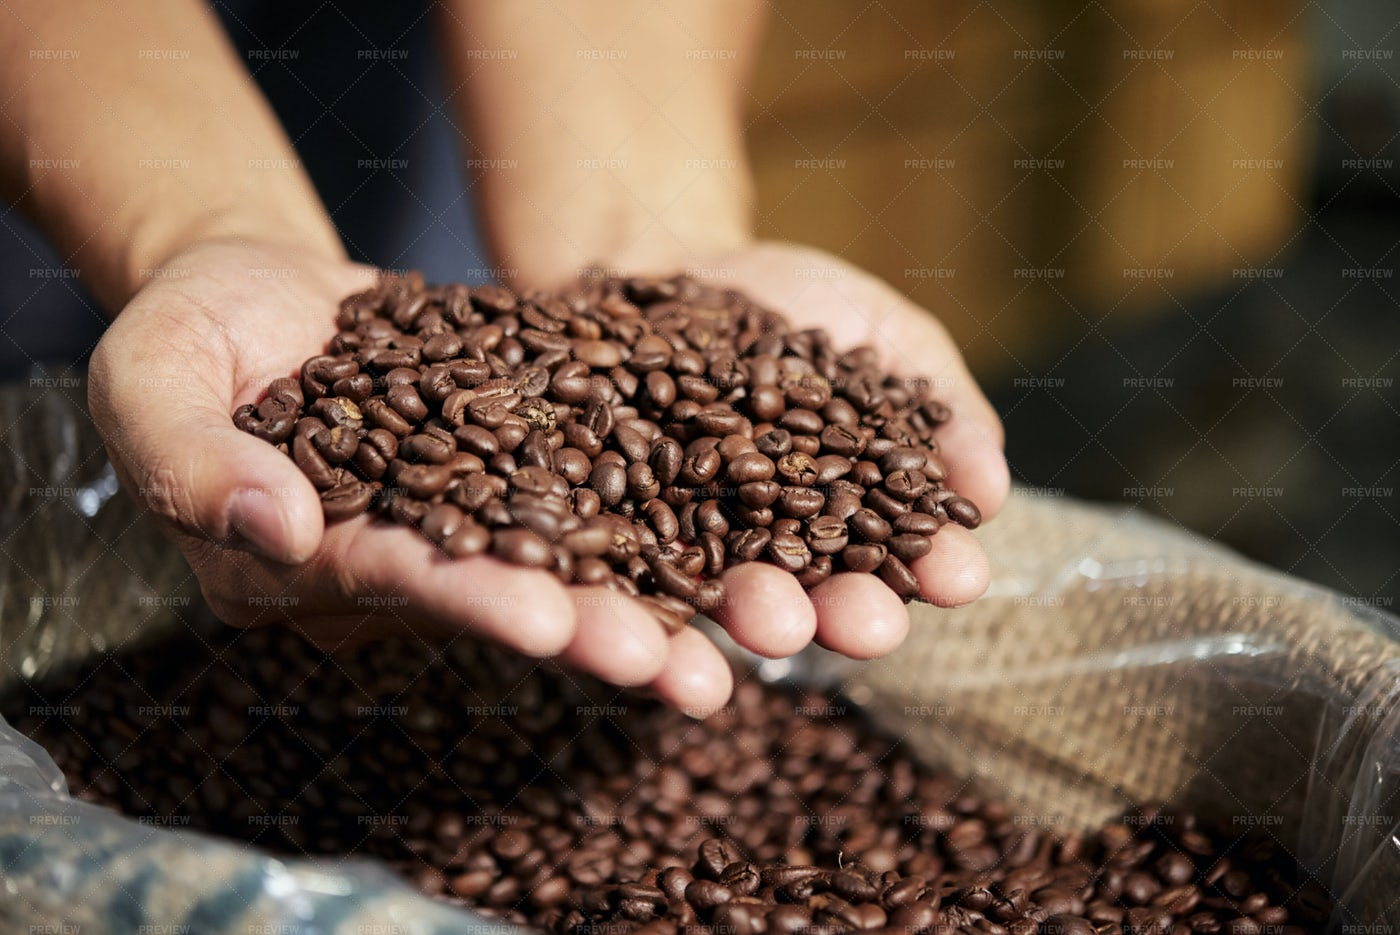 Roasted Coffee Beans In Bag: Stock Photos